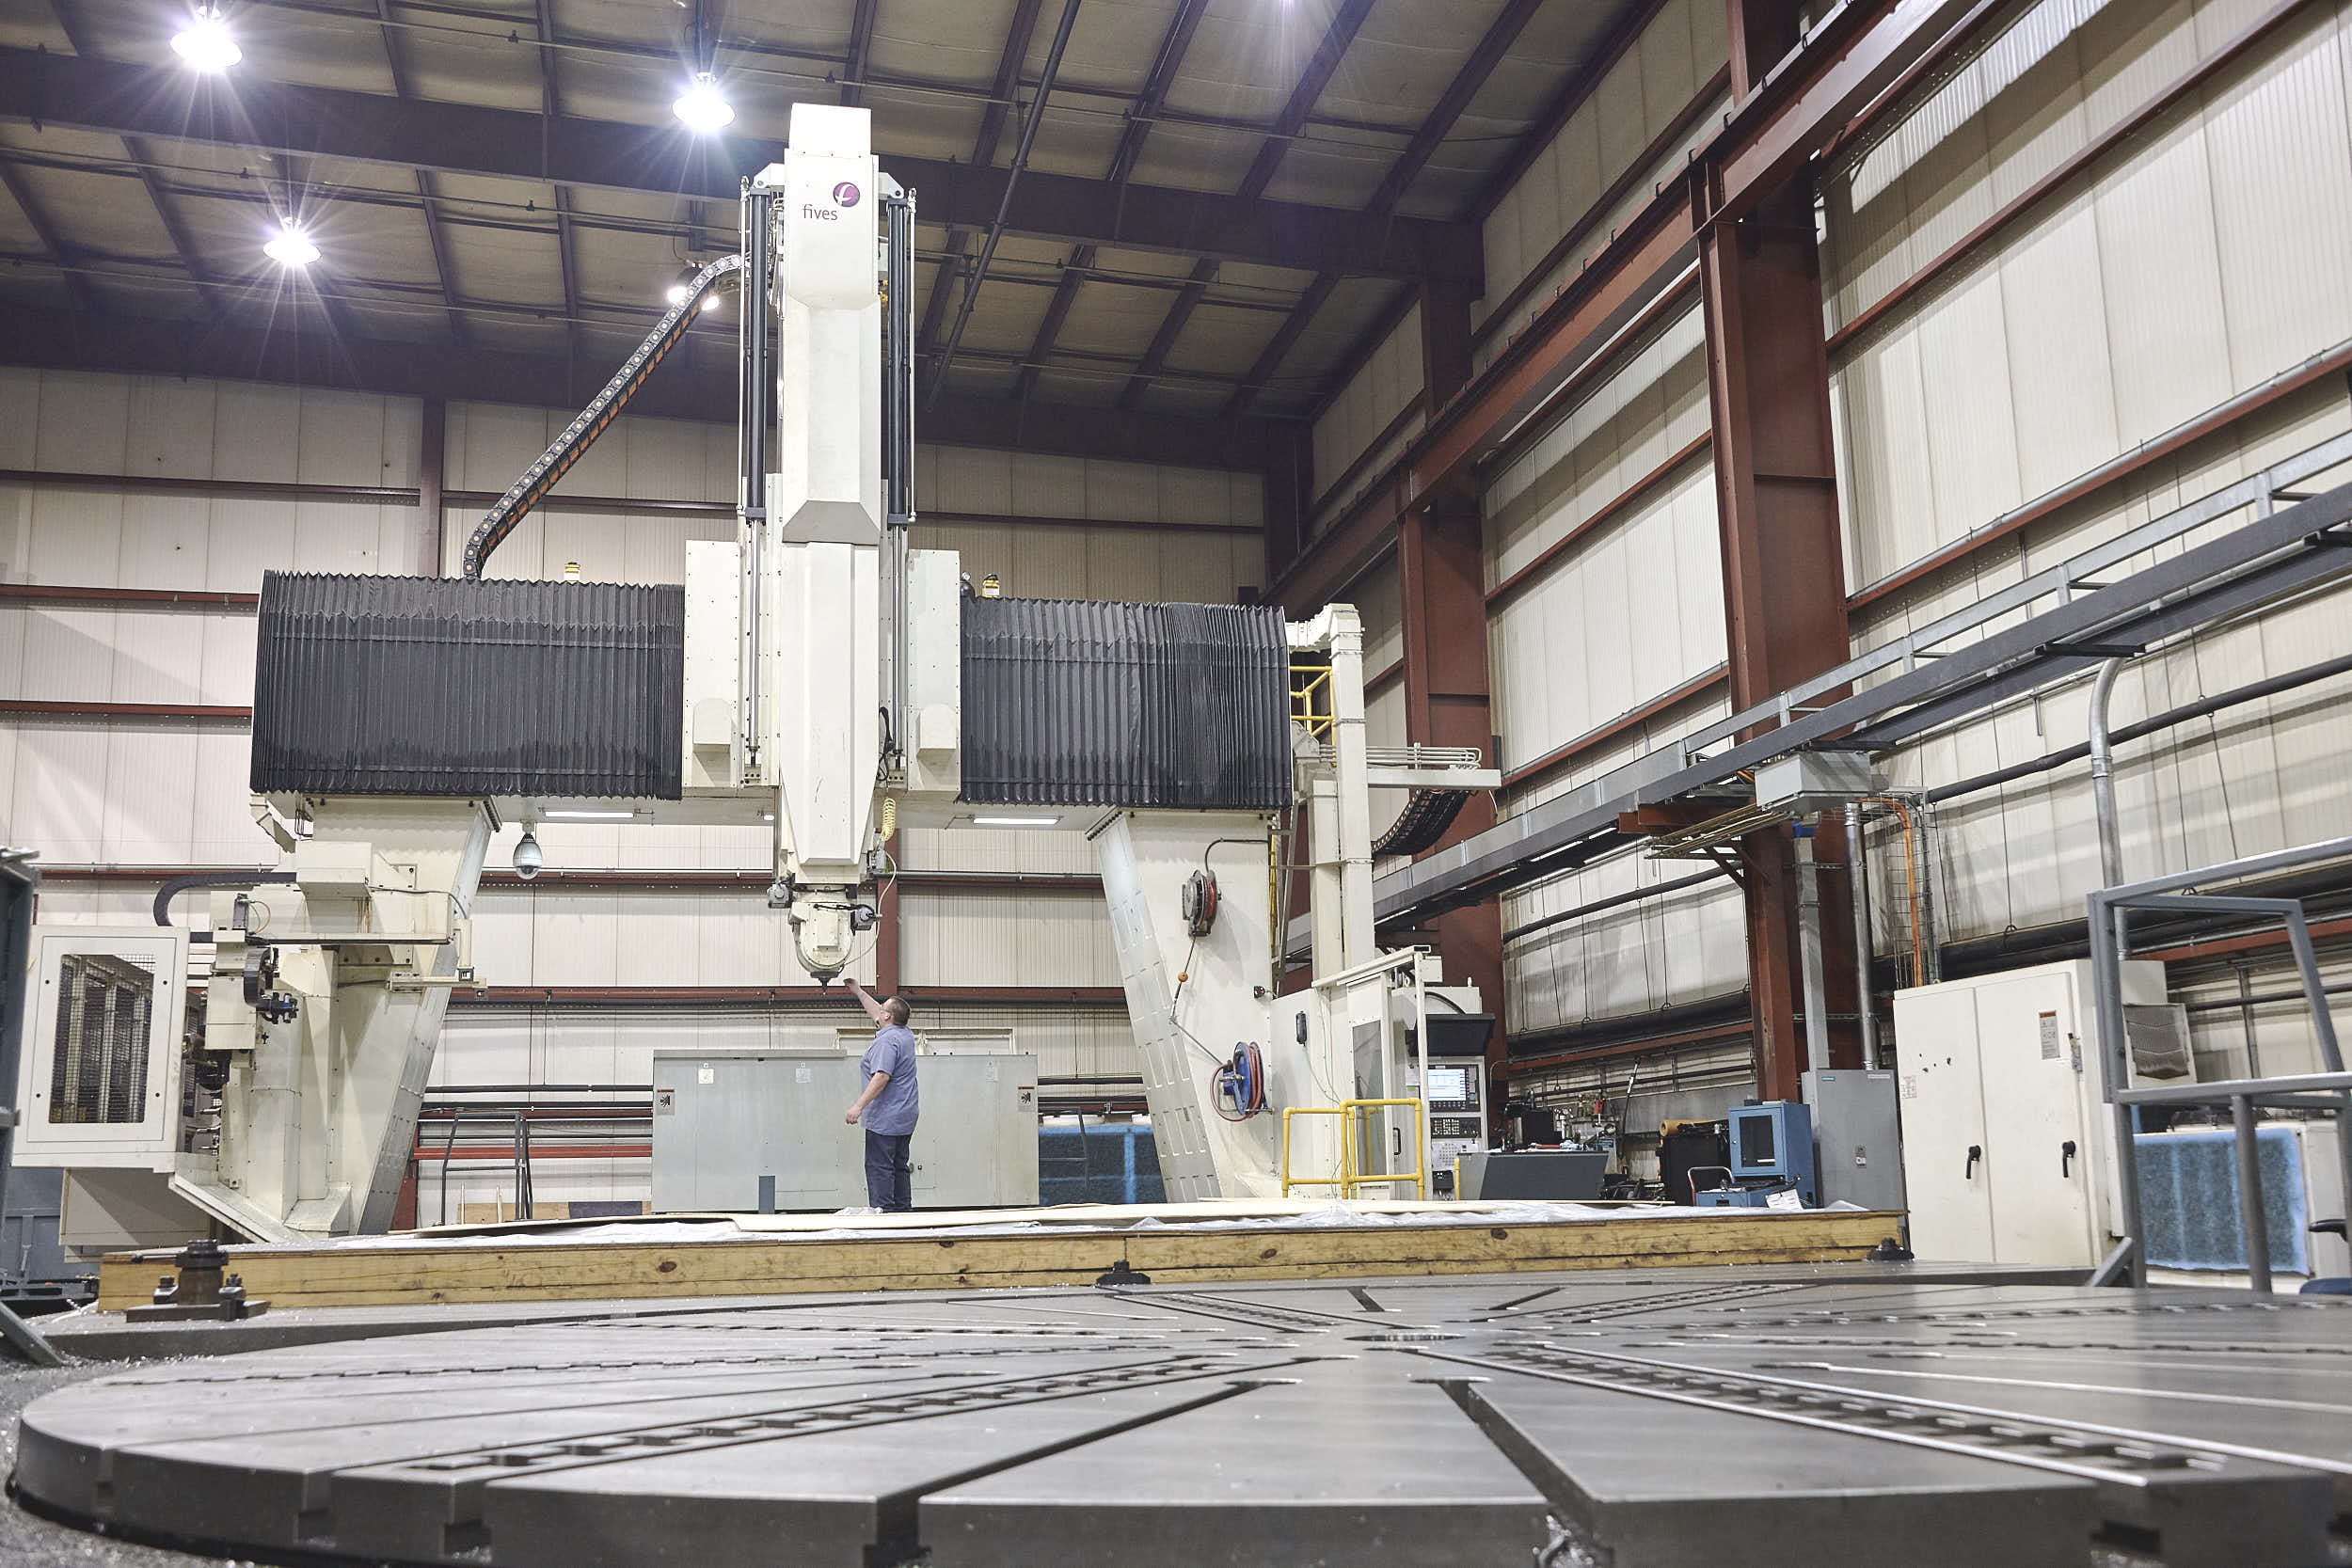 "FIVES Cincinnati U5-2500 XL   824""X, 197""Y, 98""Z, 200 deg. A, endless C  157"" table dia. w/ 195"" max swing  5-Axis Gimbal Head, Vertical Head  Right Angle Head, Turning Head   157"" Turning / Contouring Table, 150 Ton Capacity  Tool Changer, 120 Tool + 6 position oversize Rack Tool Probe and Part Probe  Siemens 840D Control"